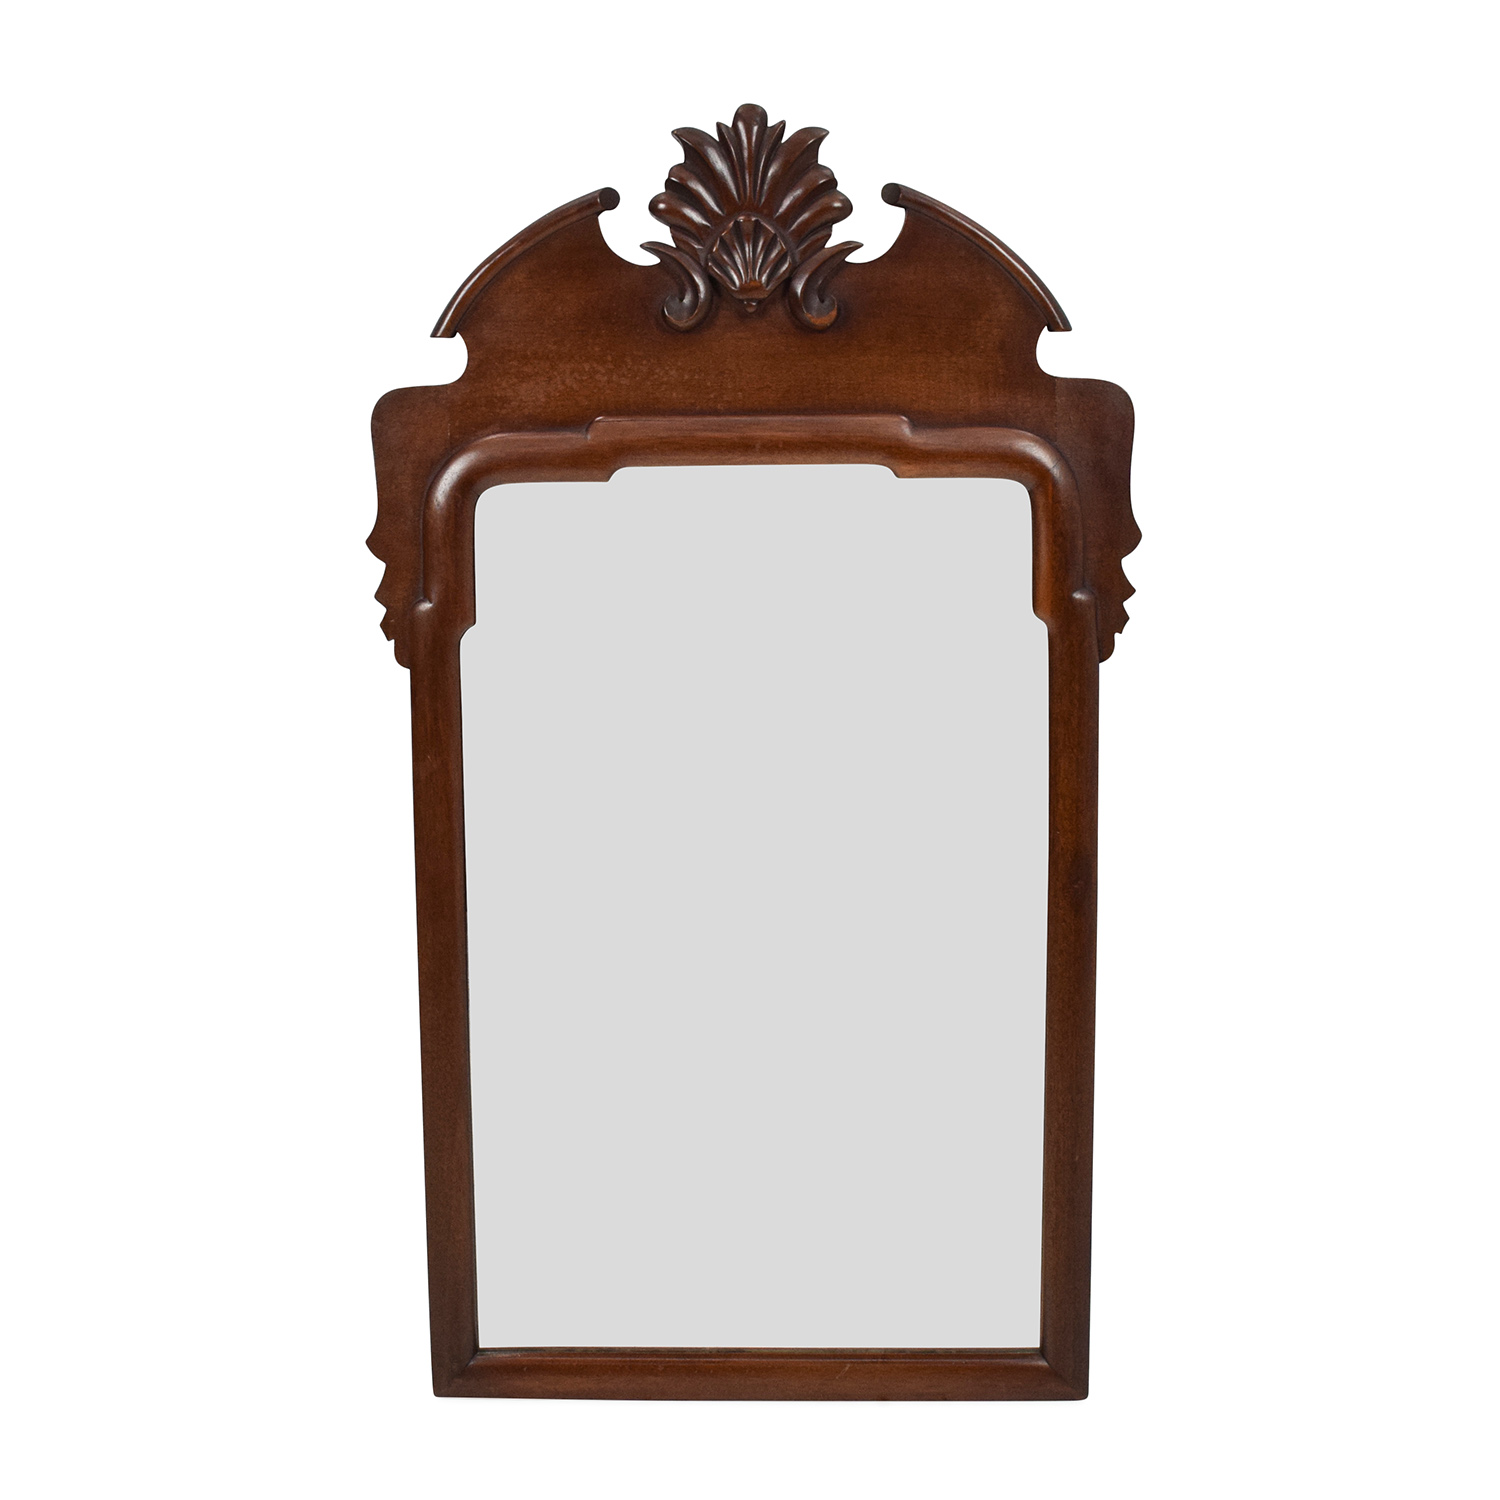 antique wood picture frames. Unknown Brand Antique Wood Frame Mirror Nyc Antique Wood Picture Frames